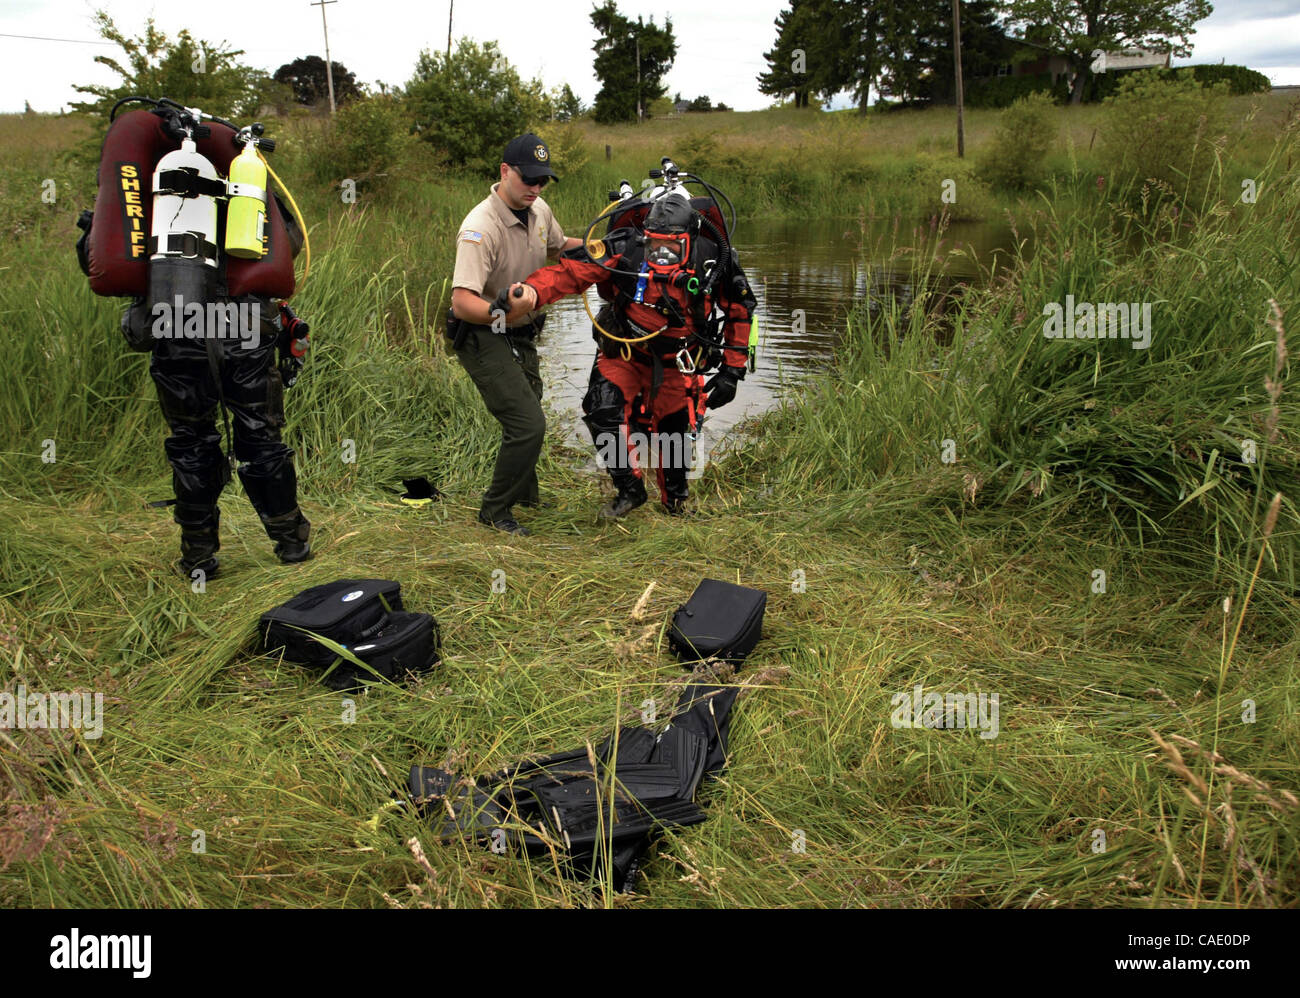 Jun 18, 2010 - Portland, Oregon, U S  - A marine unit with